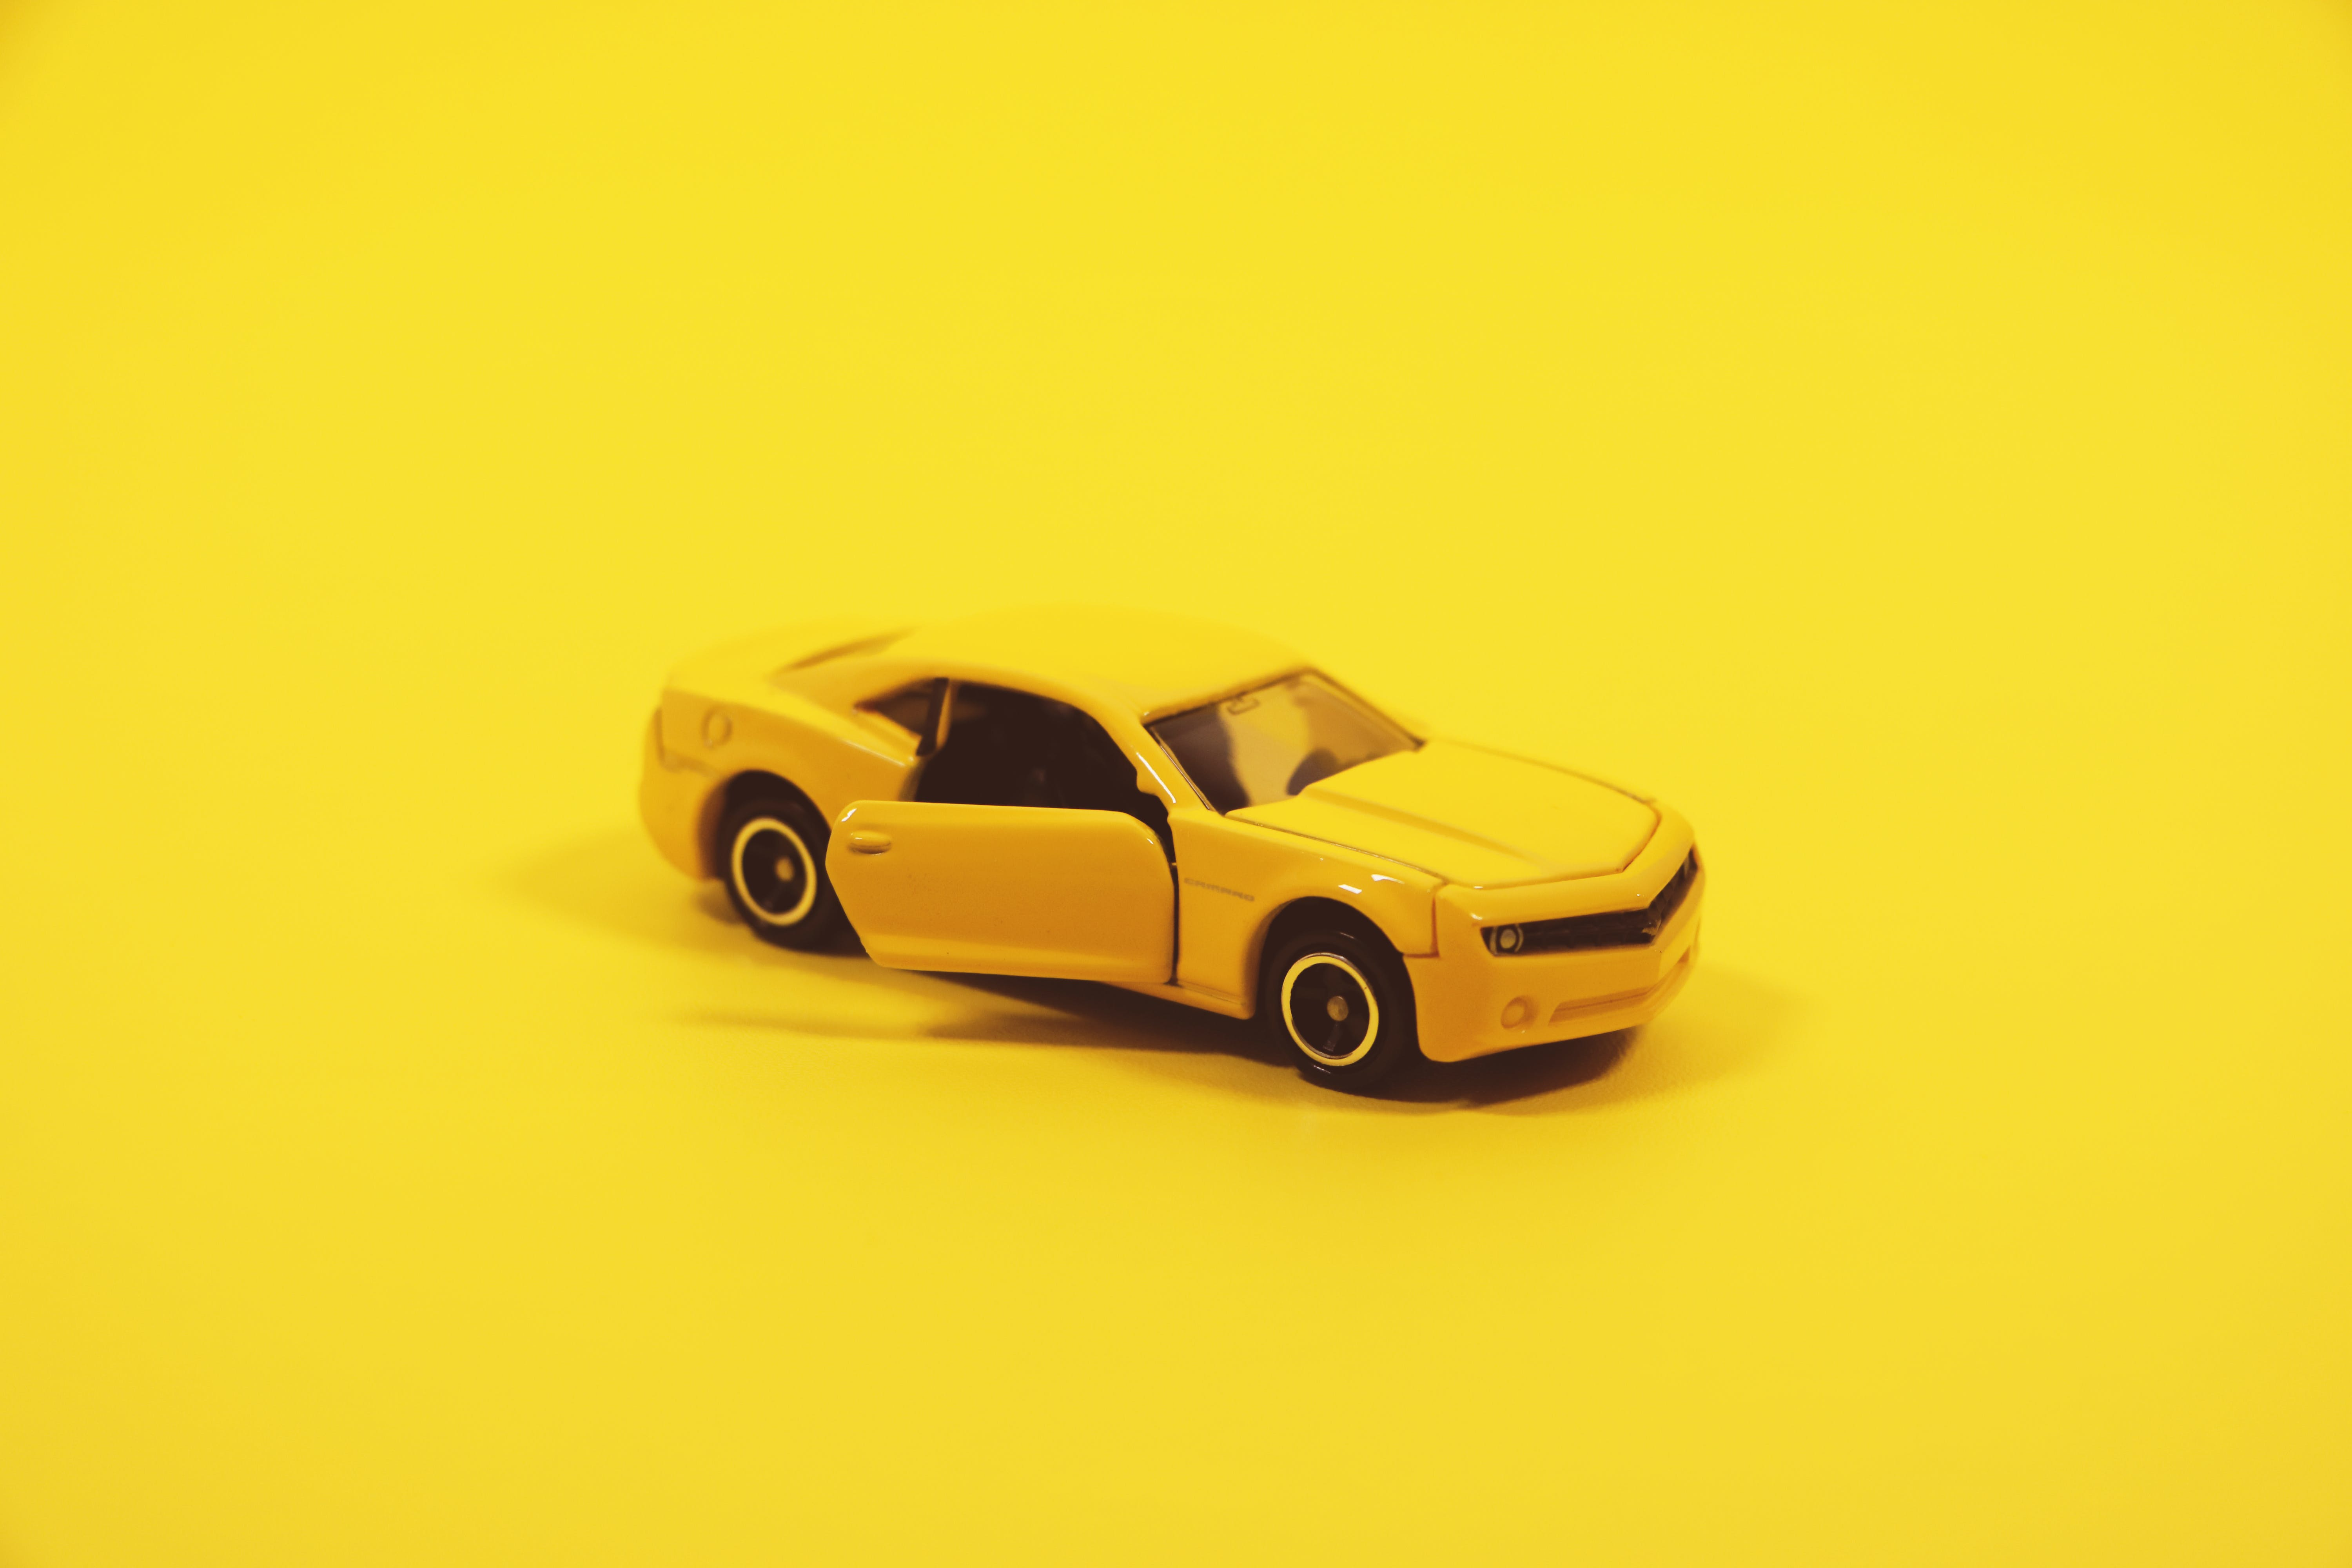 Yellow Car Toy